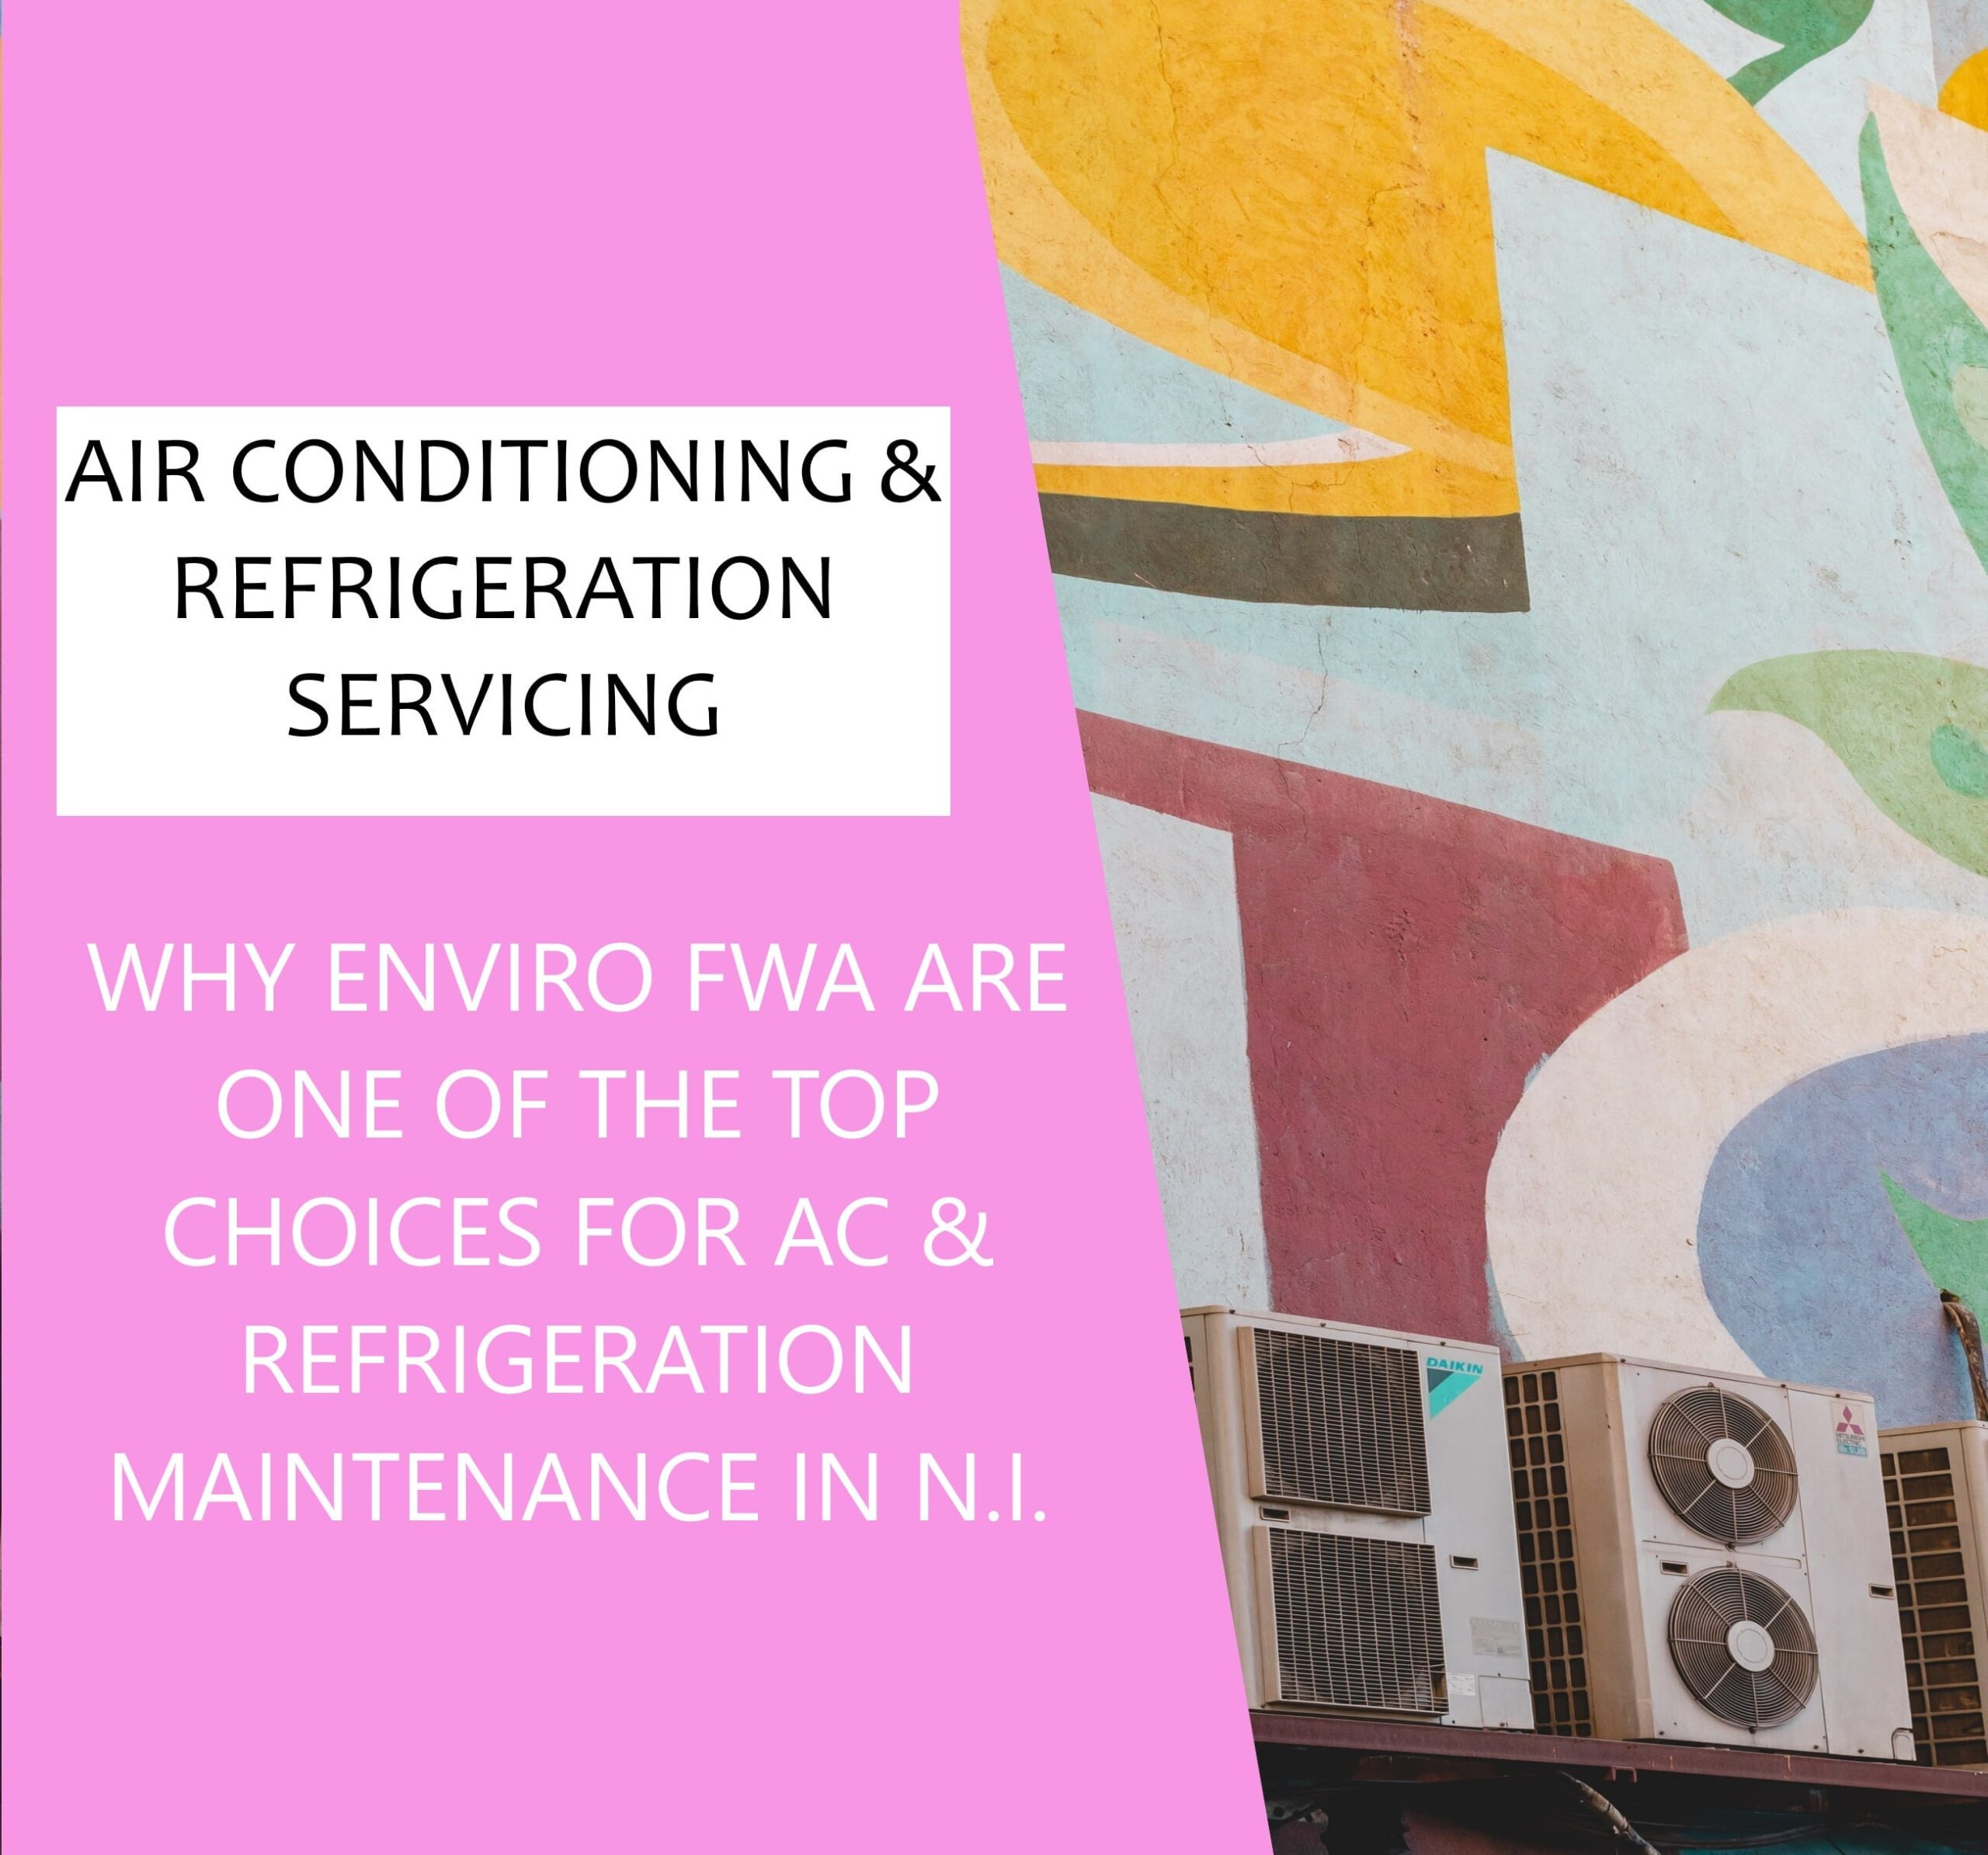 ac and refrigeration servicing ni